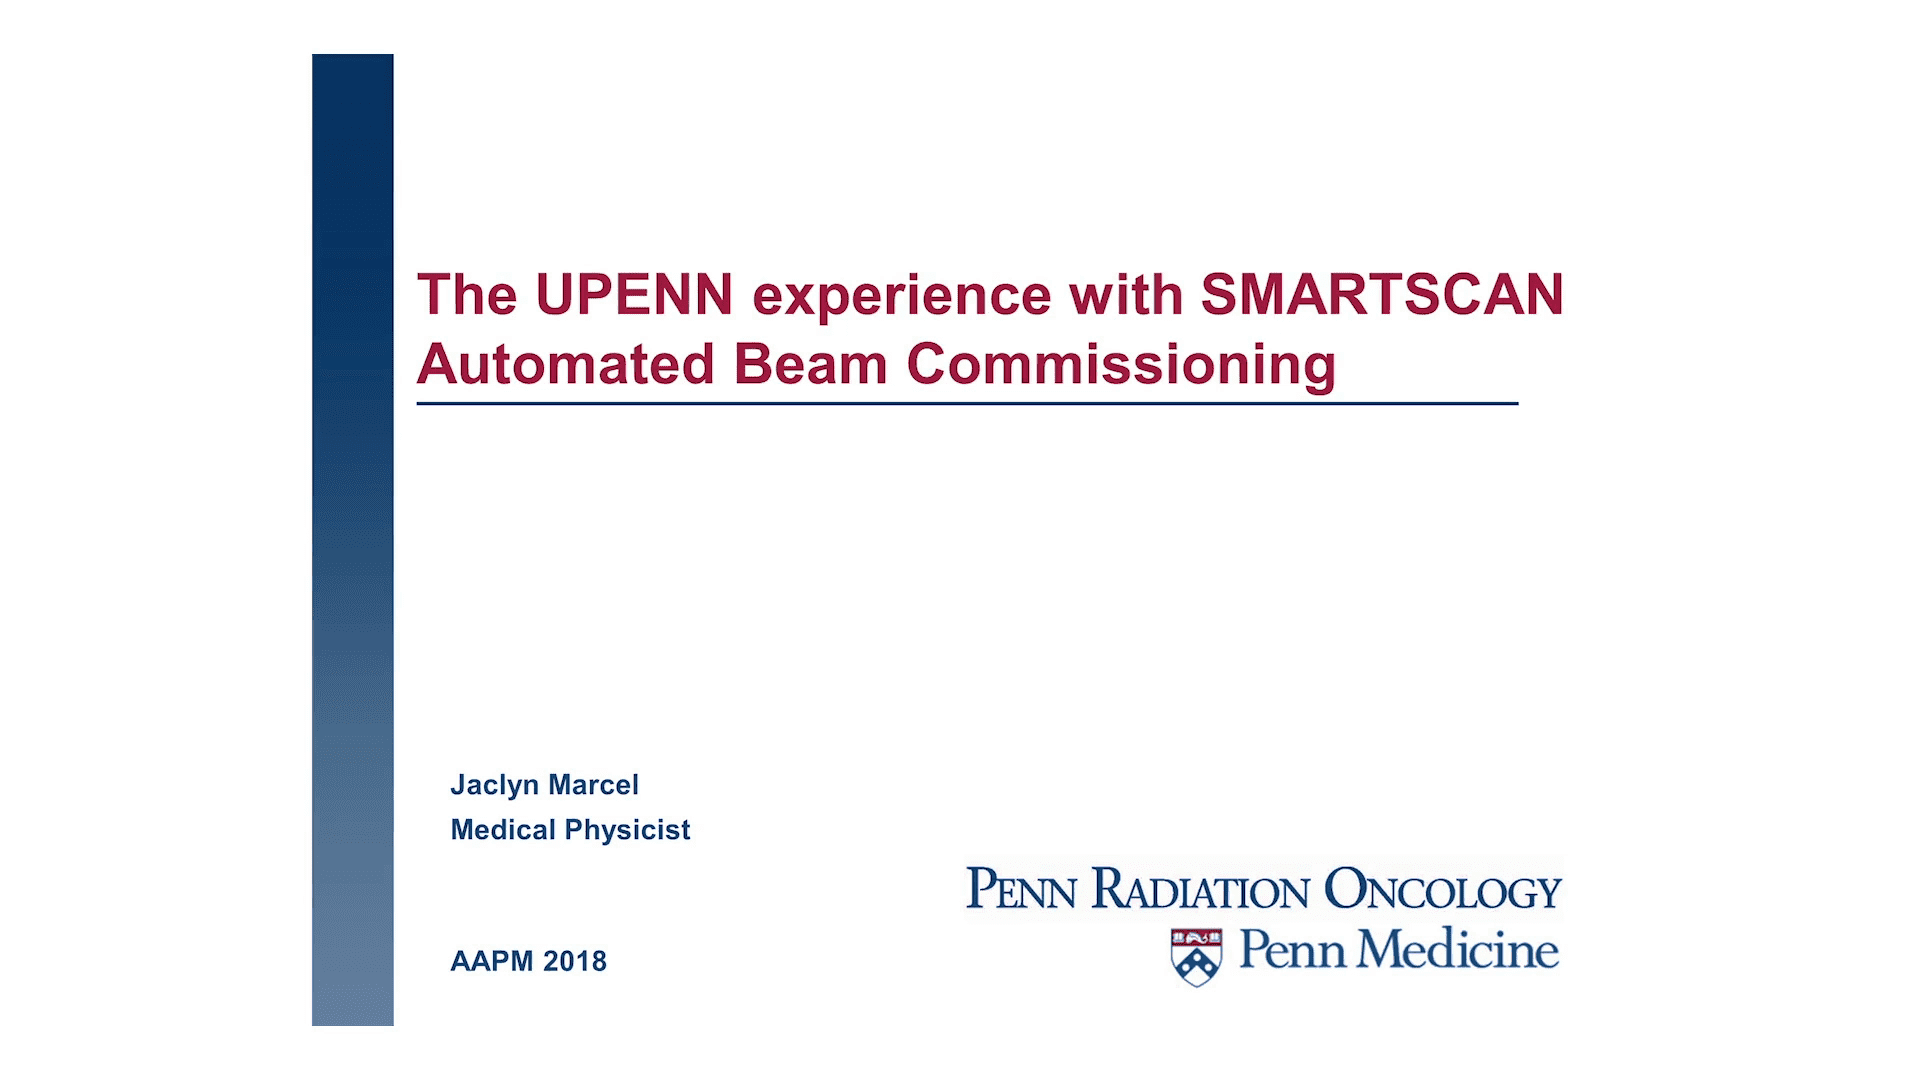 Presentation SMARTSCAN UPENN Experience